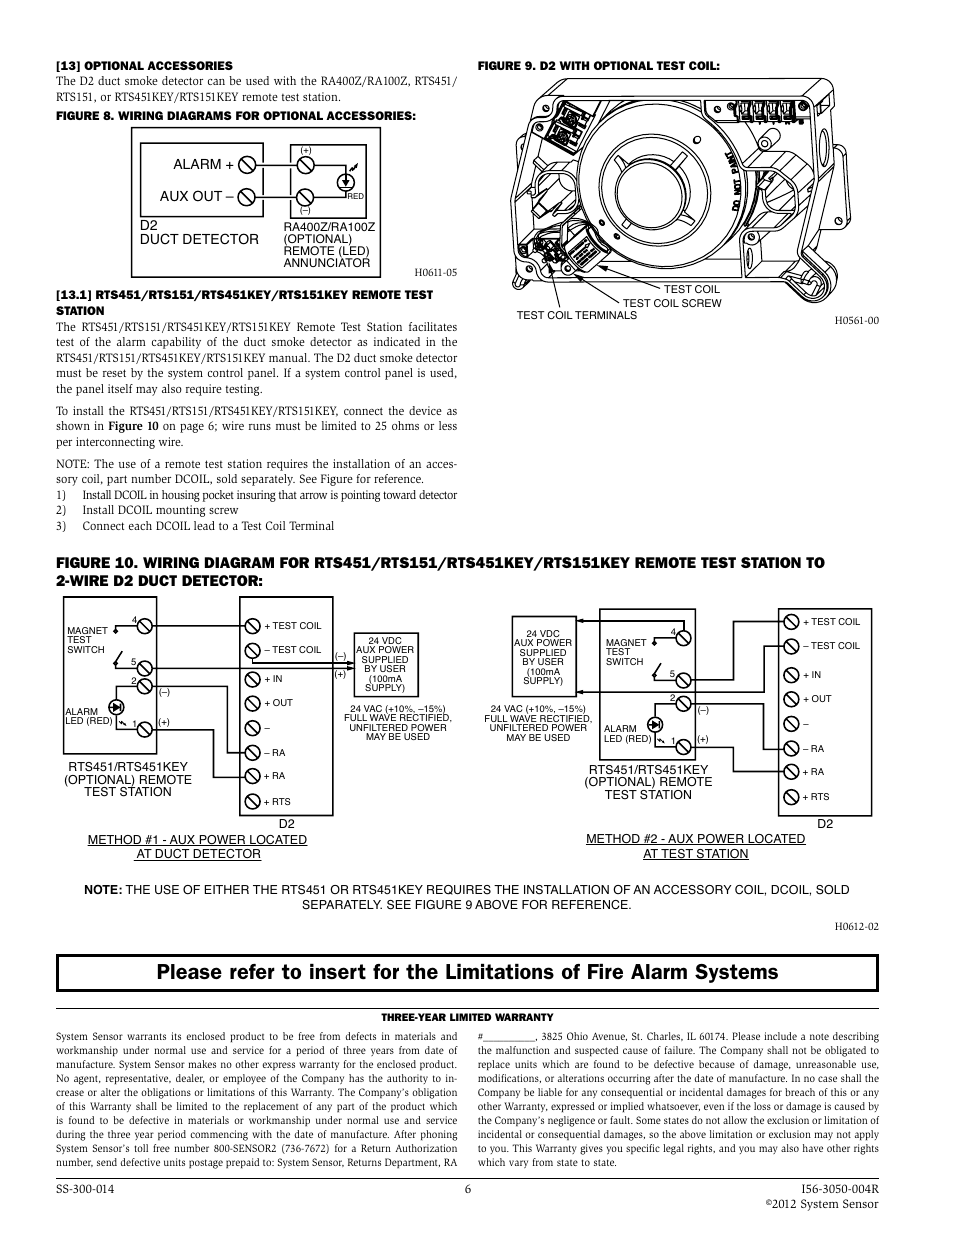 system sensor d2 page6 alarm aux out, d2 duct detector system sensor d2 user manual system sensor dh1851ac wiring diagrams at panicattacktreatment.co